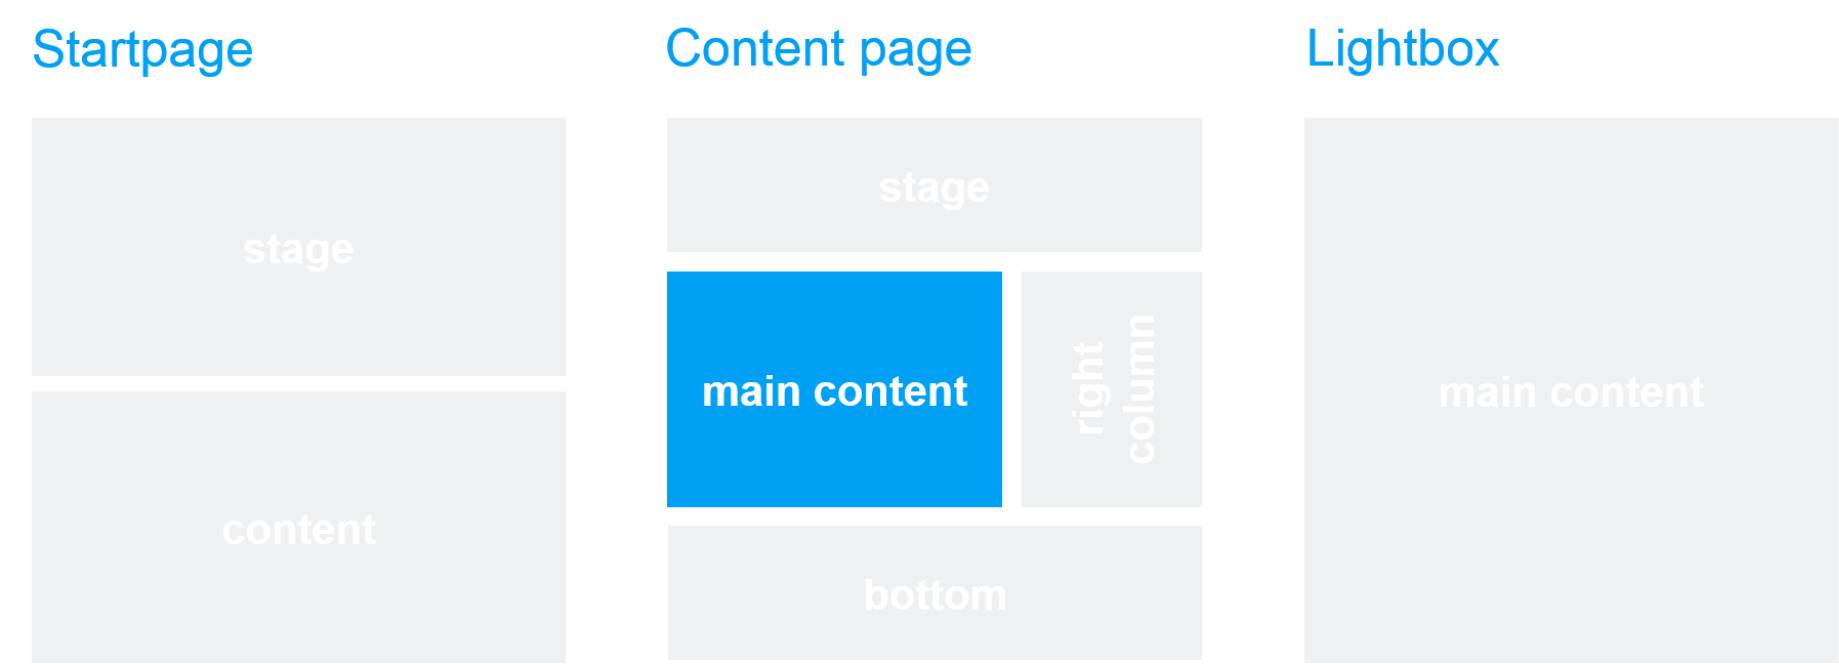 Template and page area: Press Overview